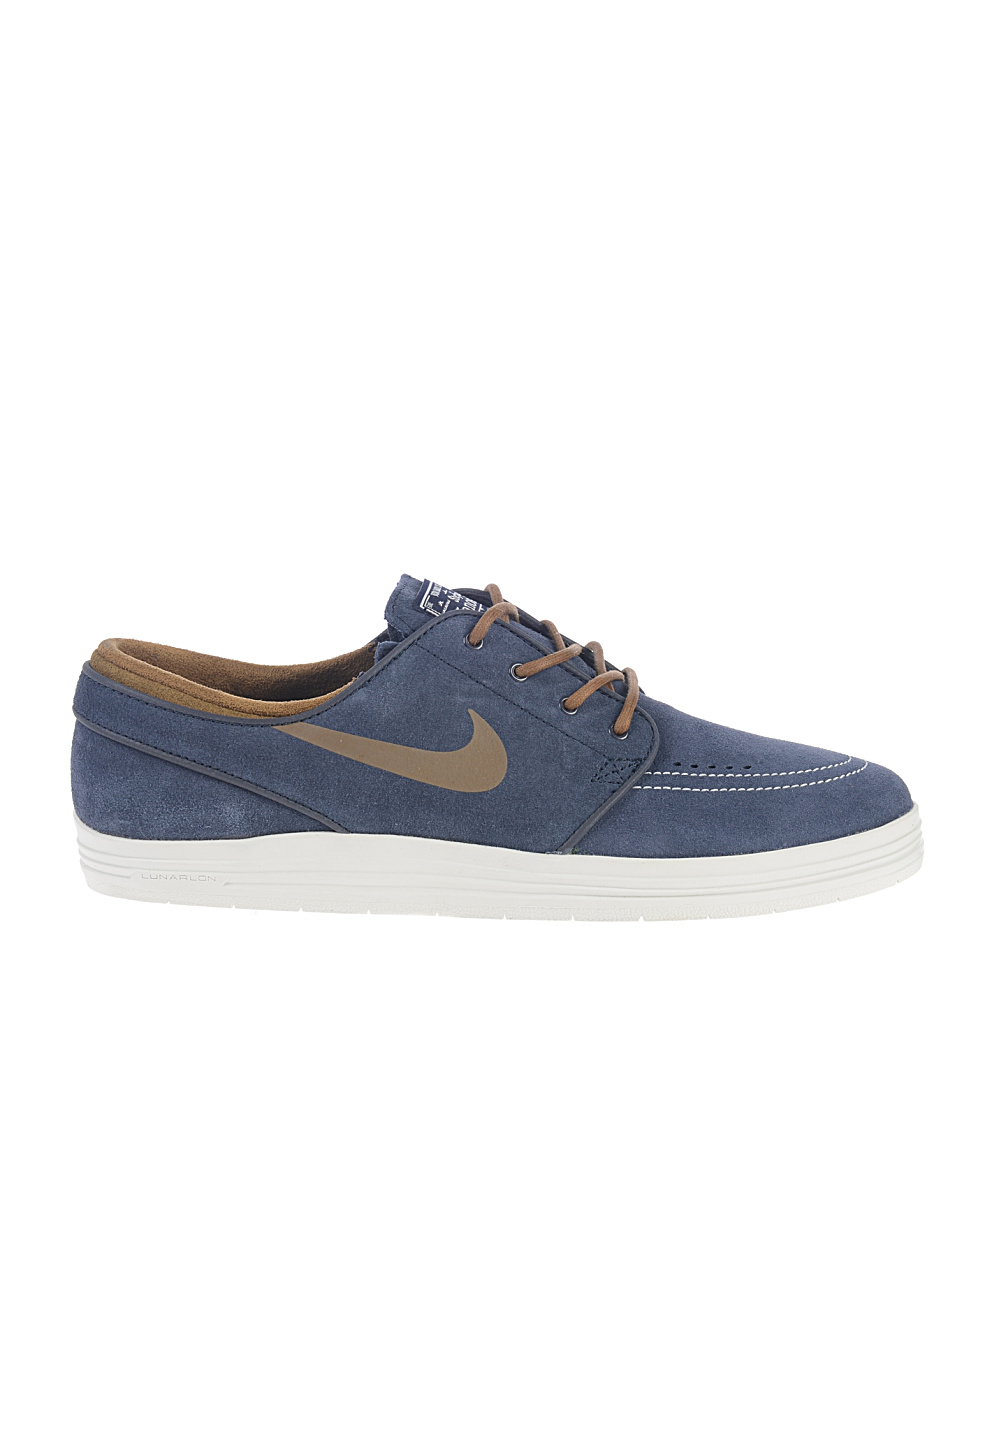 nike sb lunar stefan janoski baskets pour homme bleu planet sports. Black Bedroom Furniture Sets. Home Design Ideas